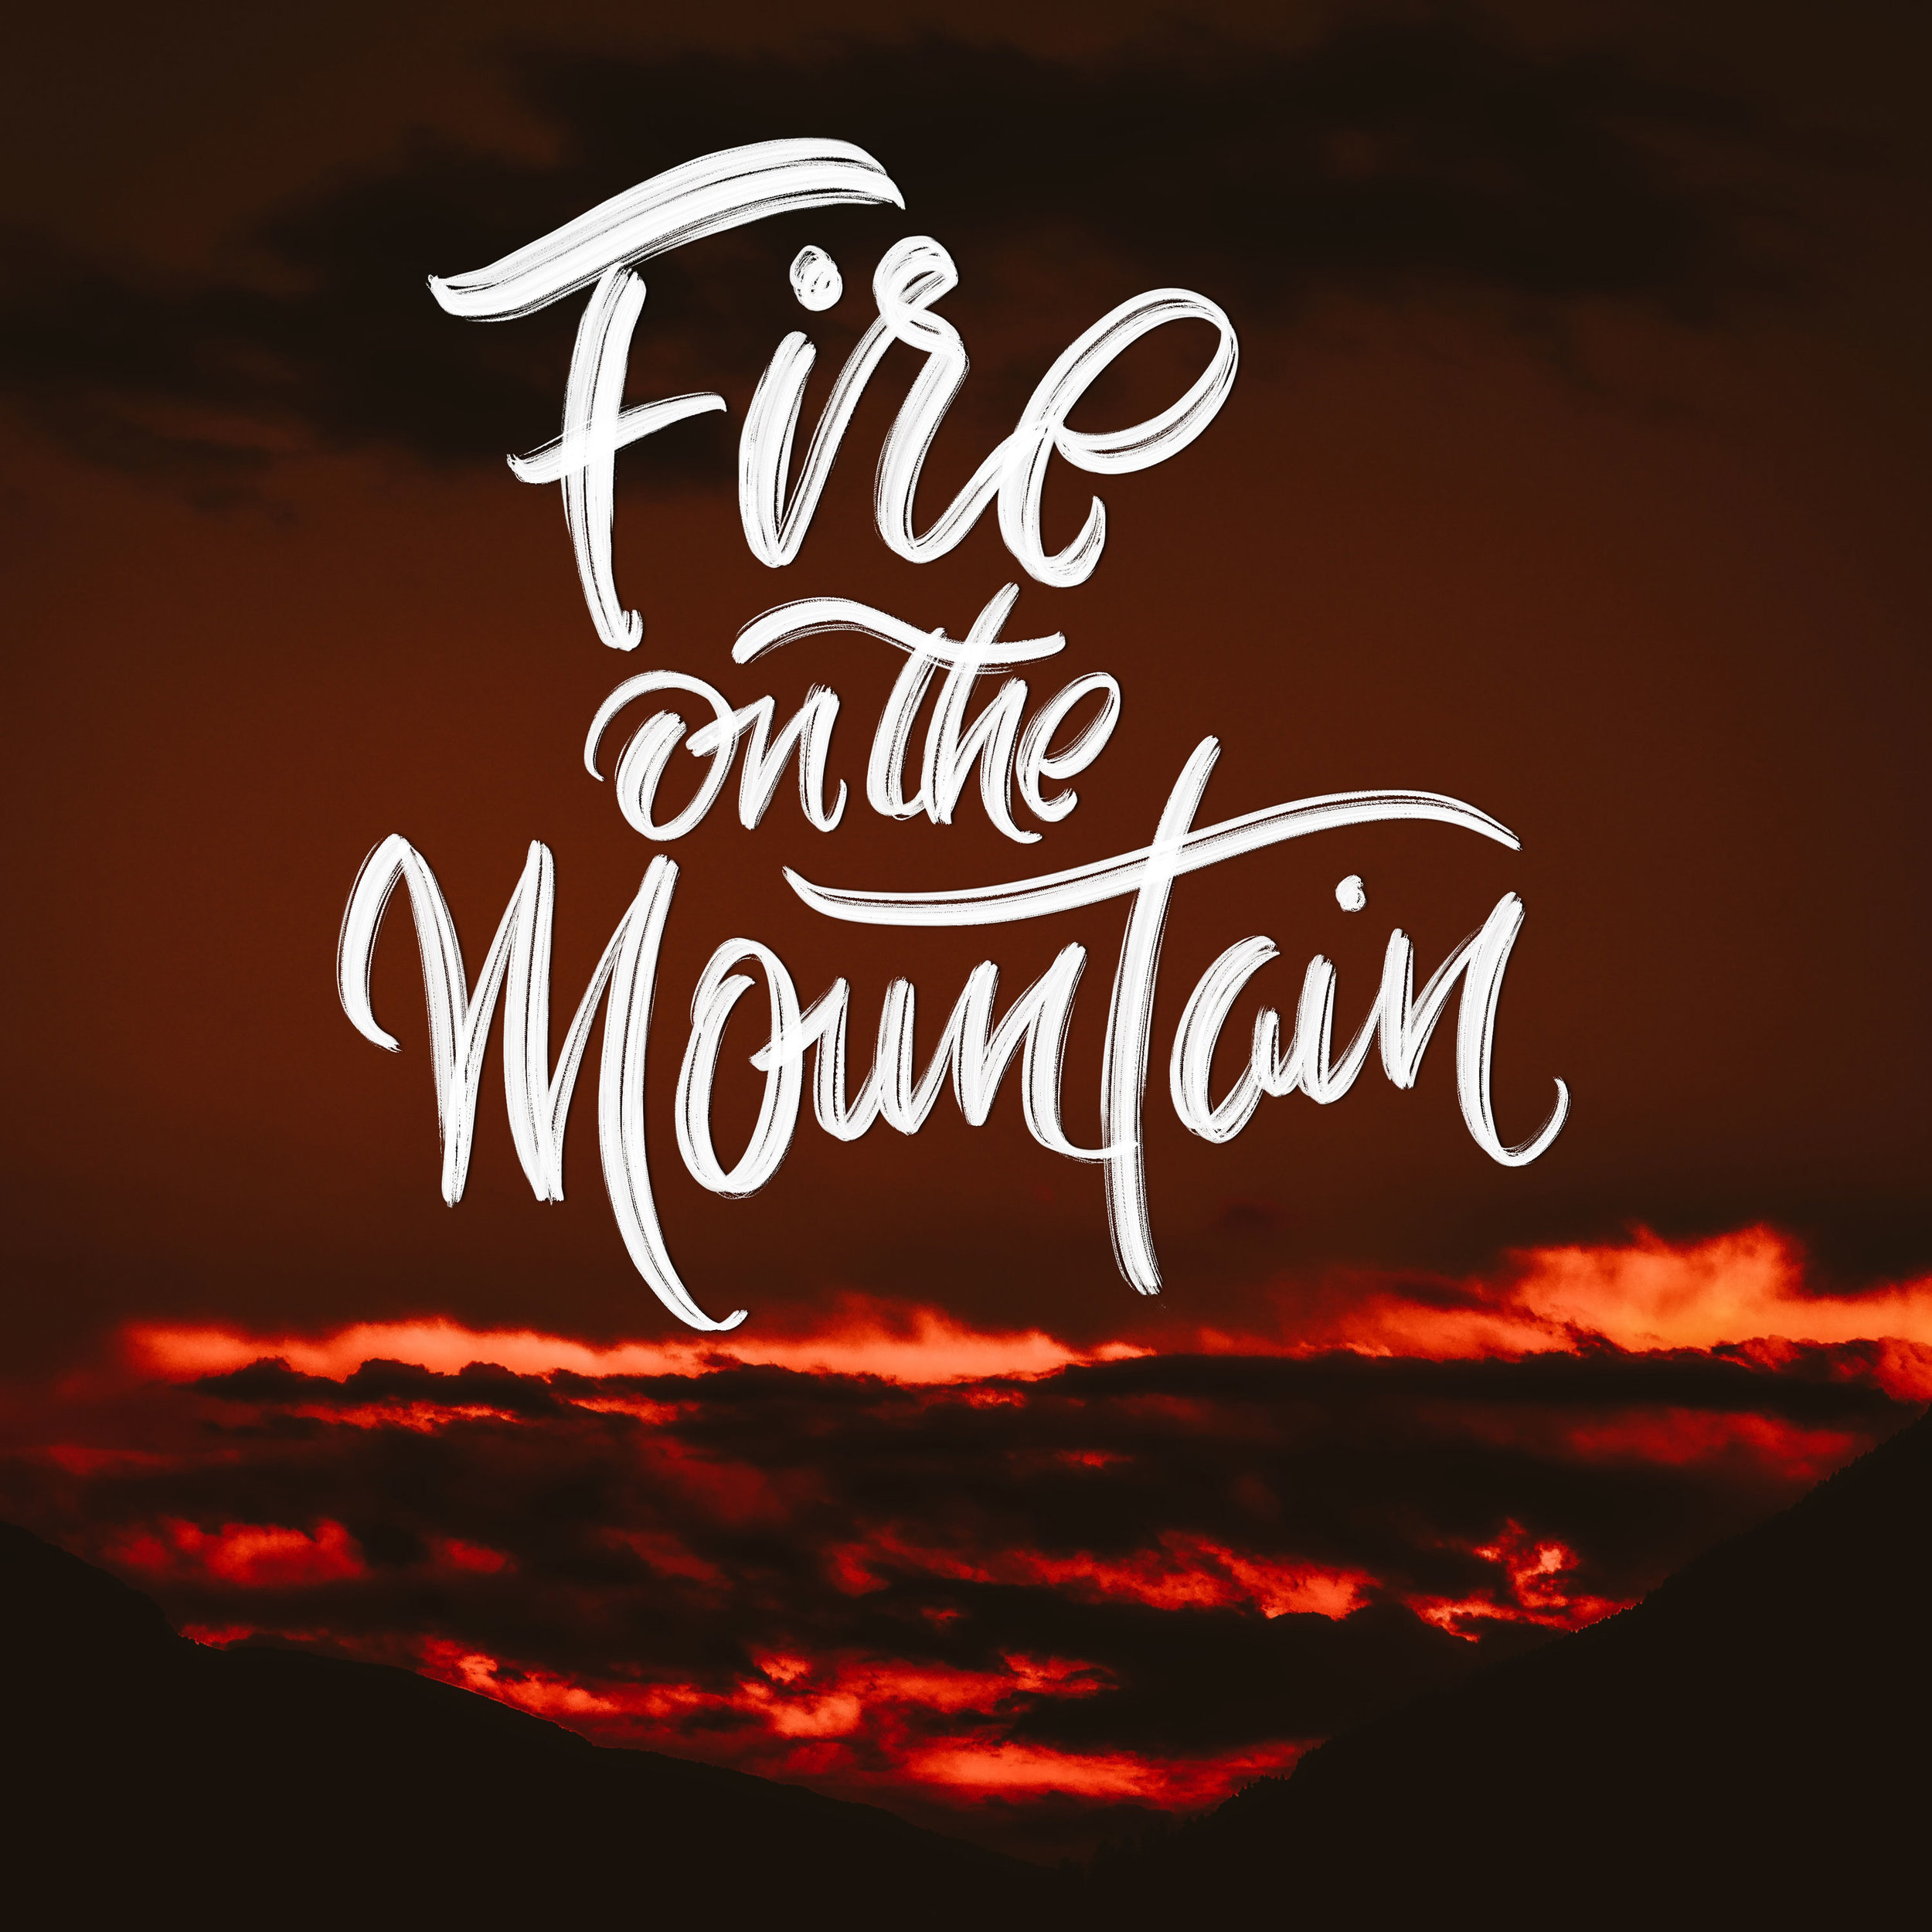 Fire-on-the-Mountain-john-suder.jpg